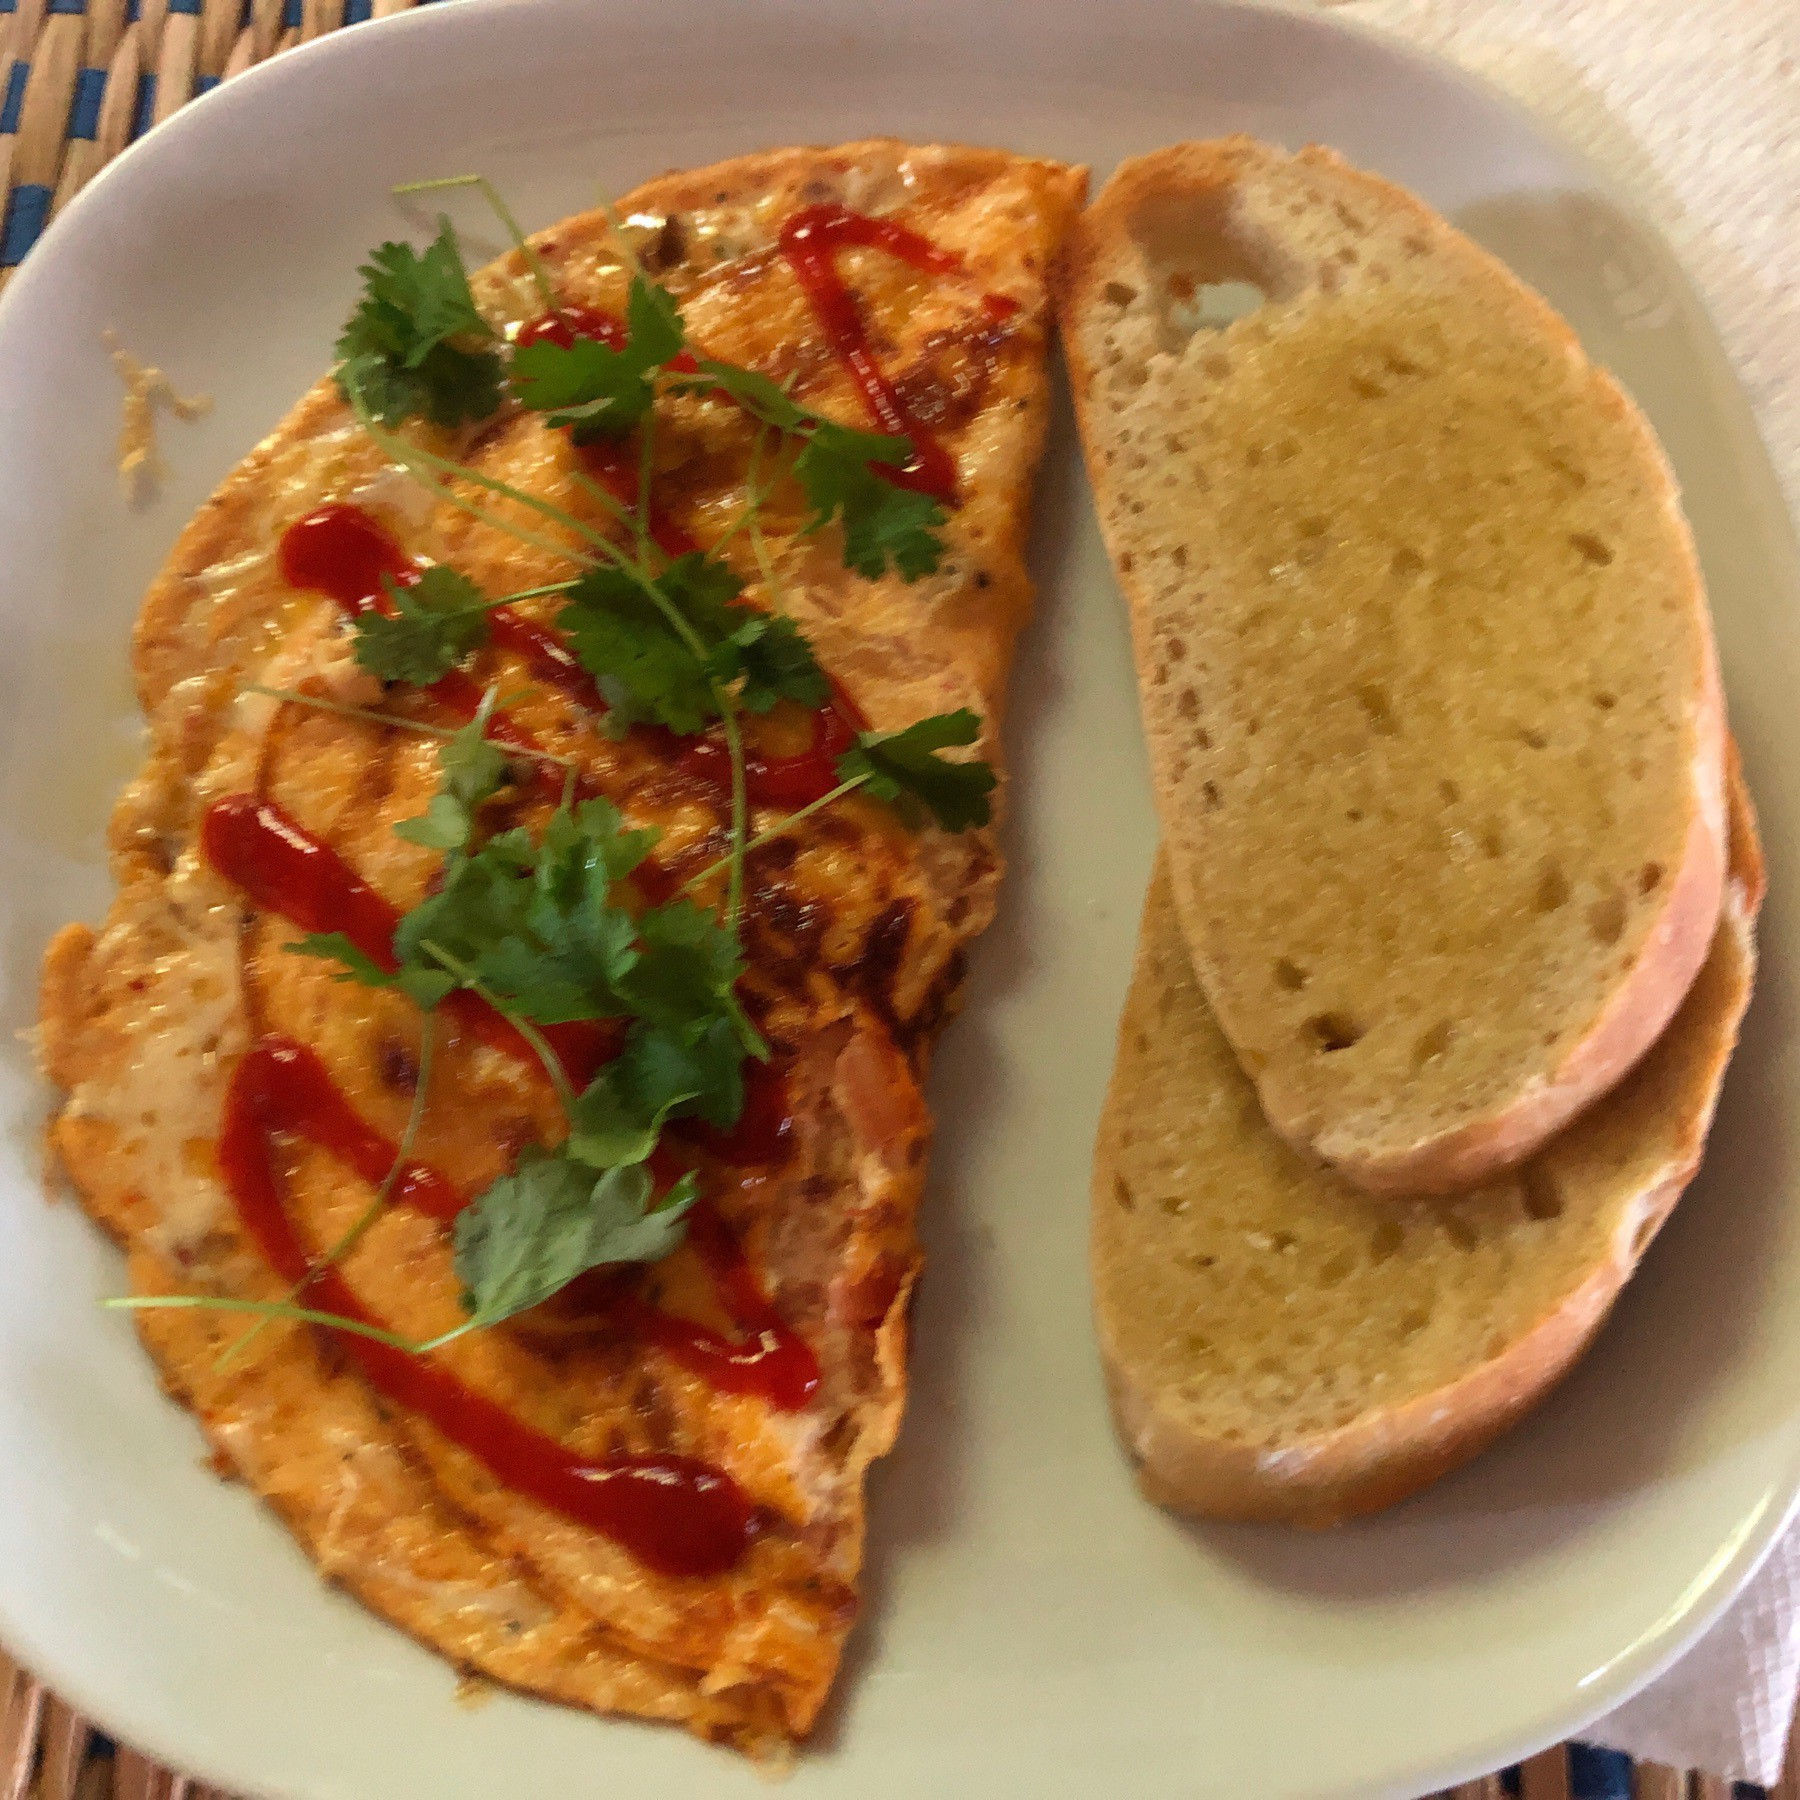 Omlette and toast on plate.